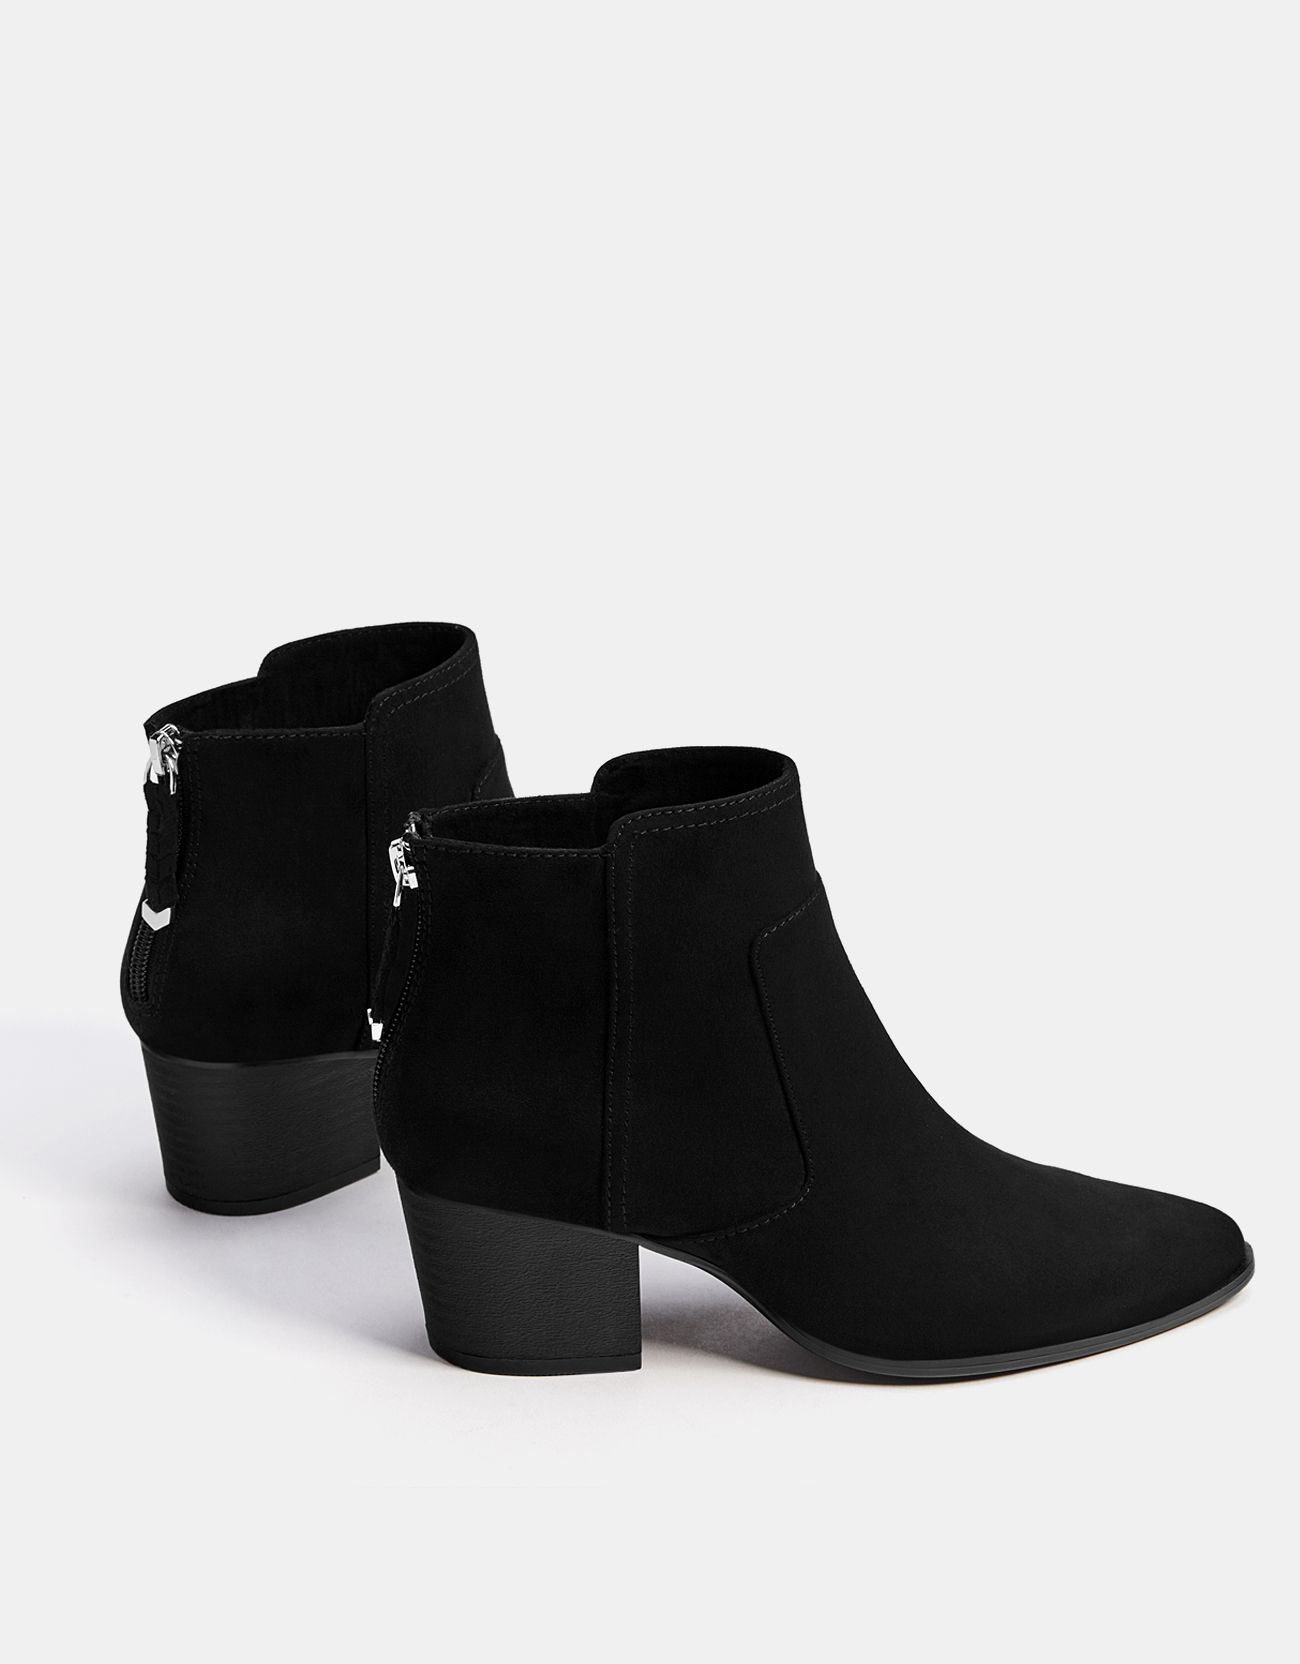 Ankle Zapatos Pinterest Zip Boots And Cowboy Shoes Botas znx6Fq